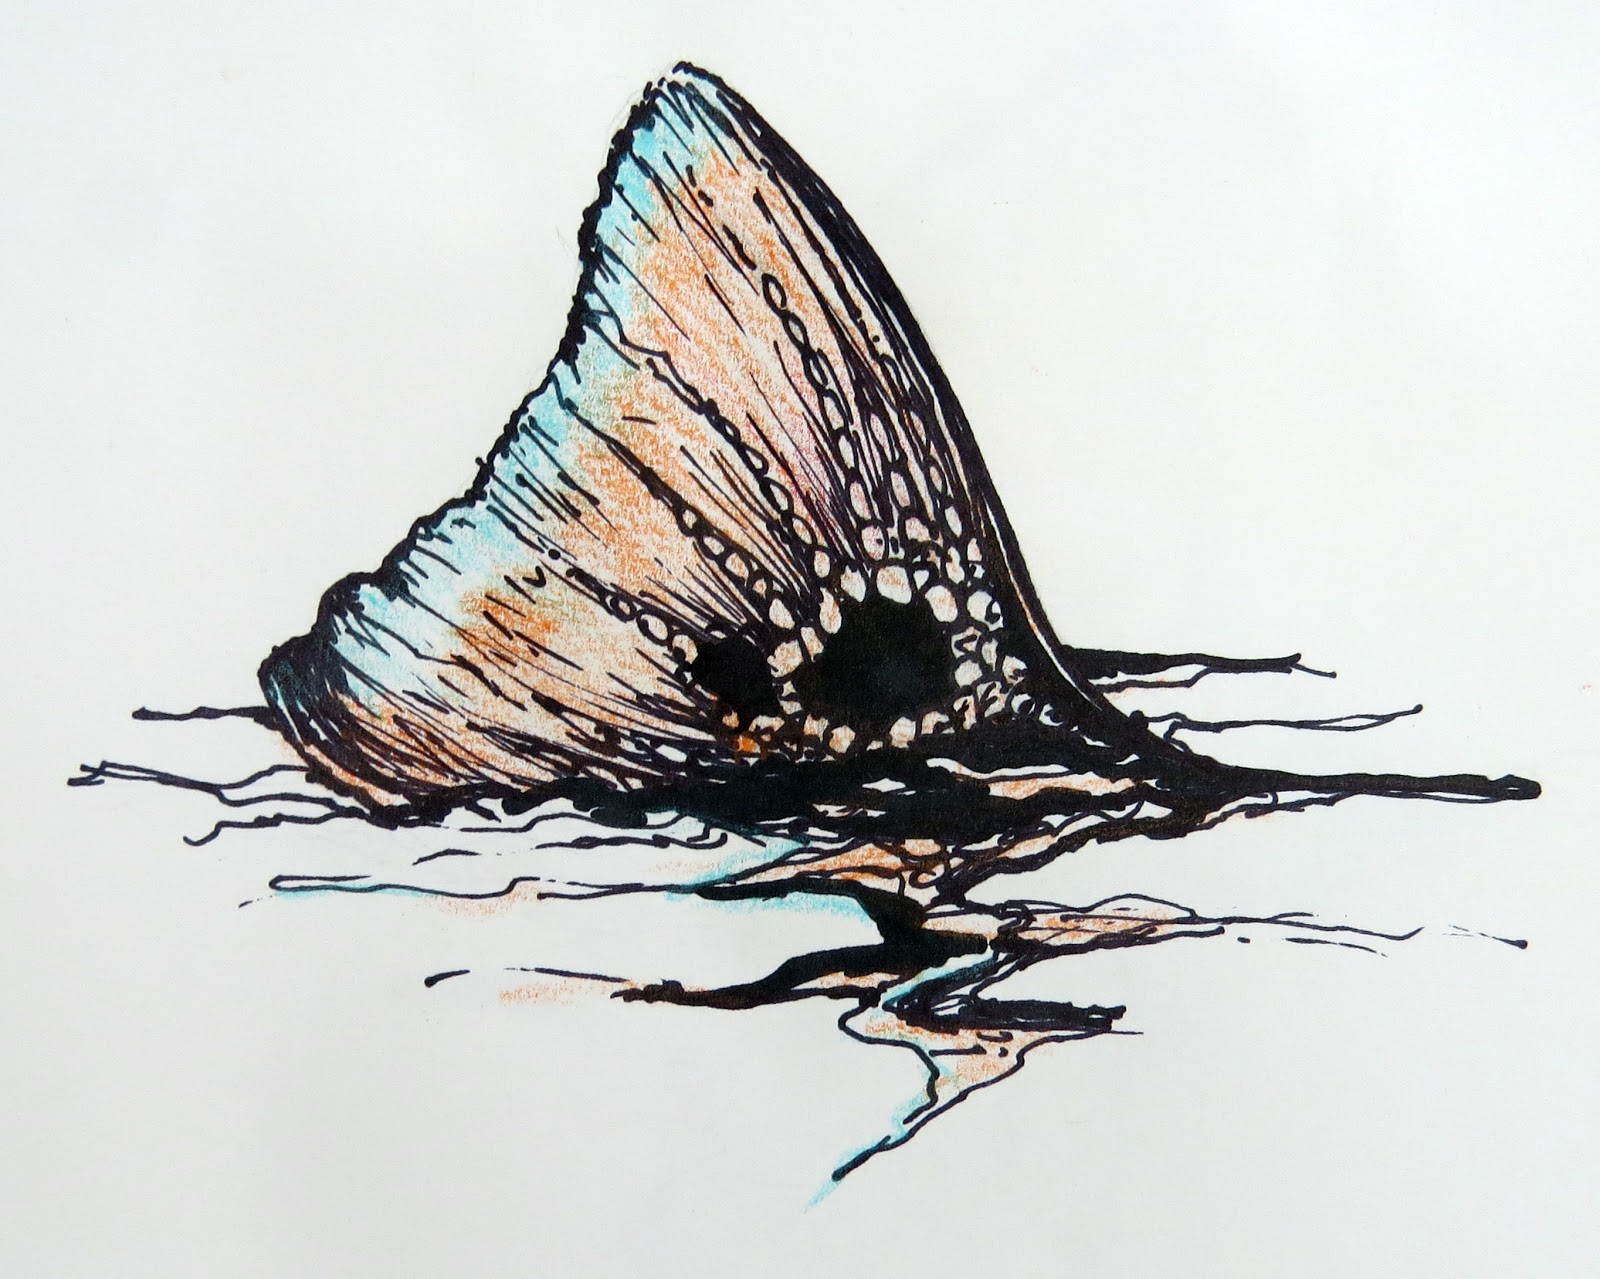 fly fishing drawing - photo #45